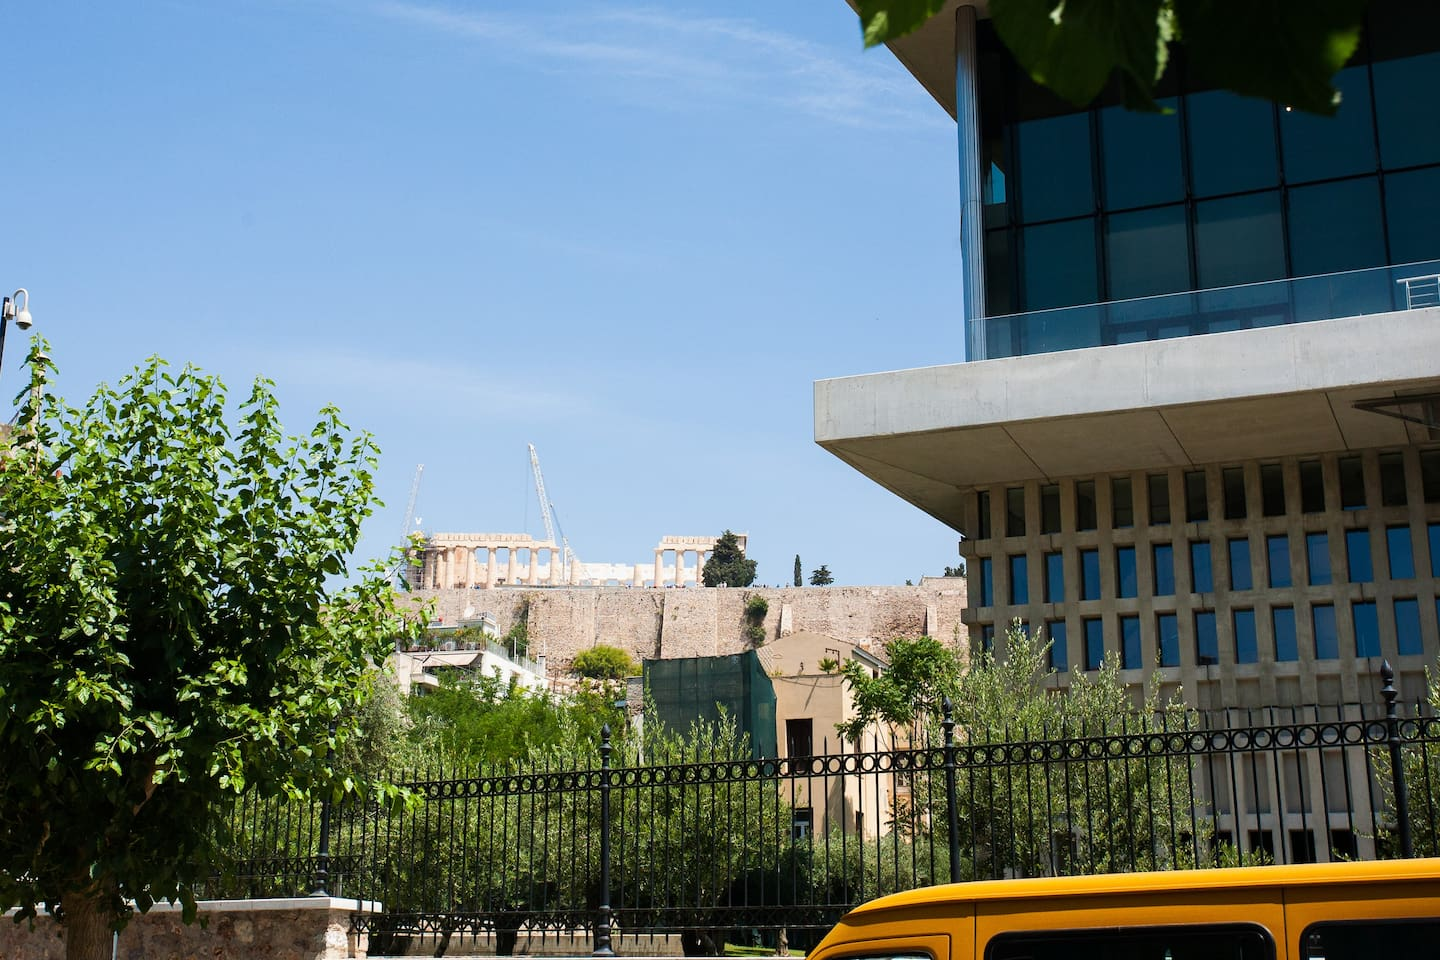 Heading out ? Acropolis & Acropolis museum in 1 minute walk.